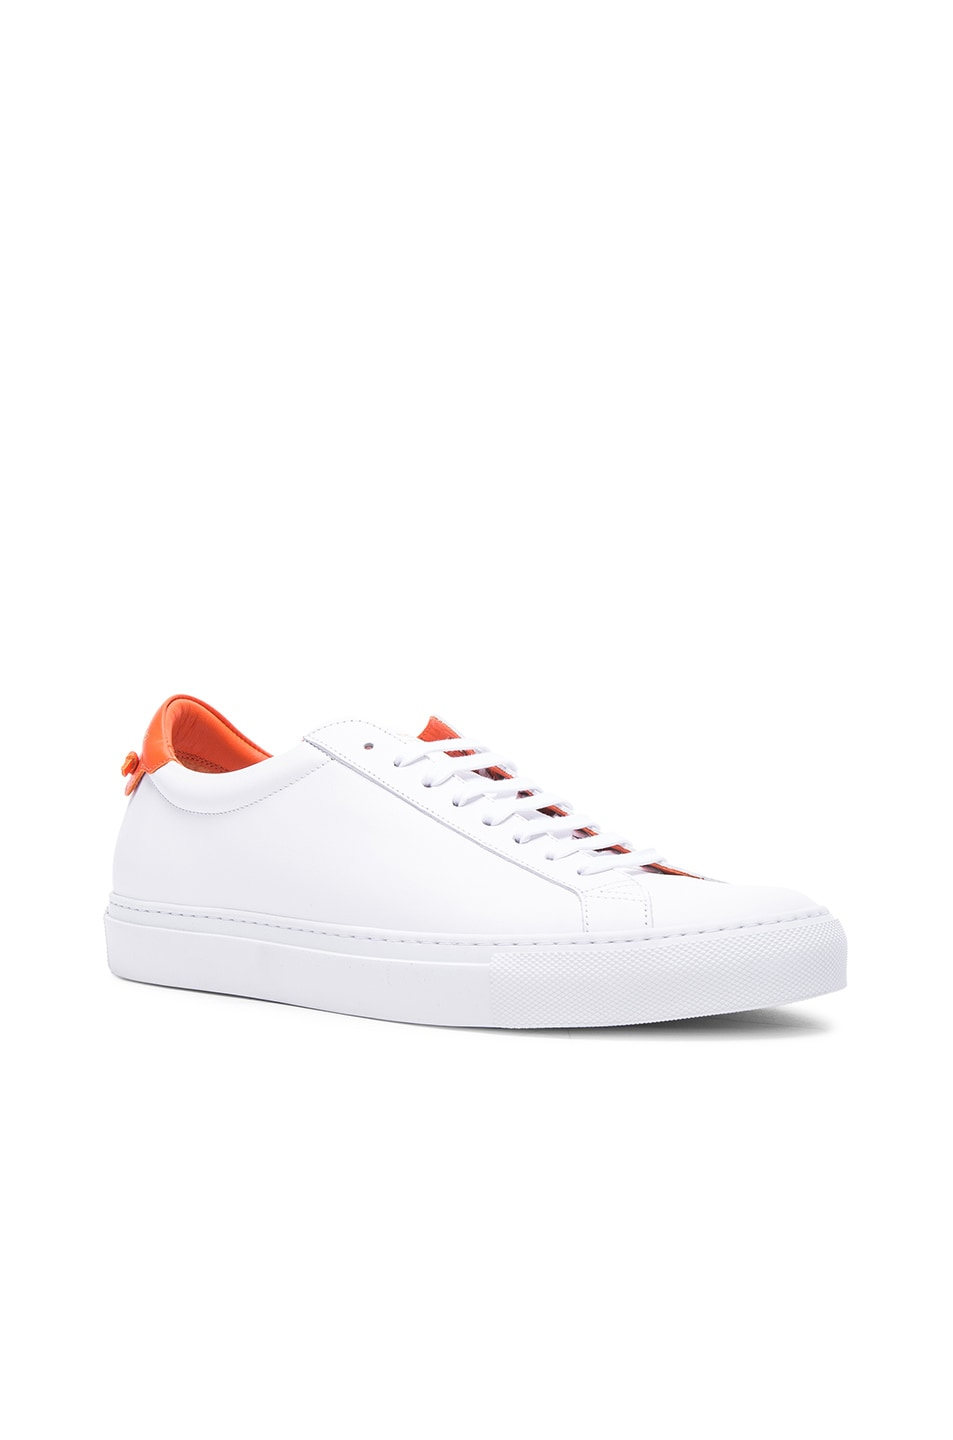 Image 1 of Givenchy Knots Low Sneakers in White & Orange